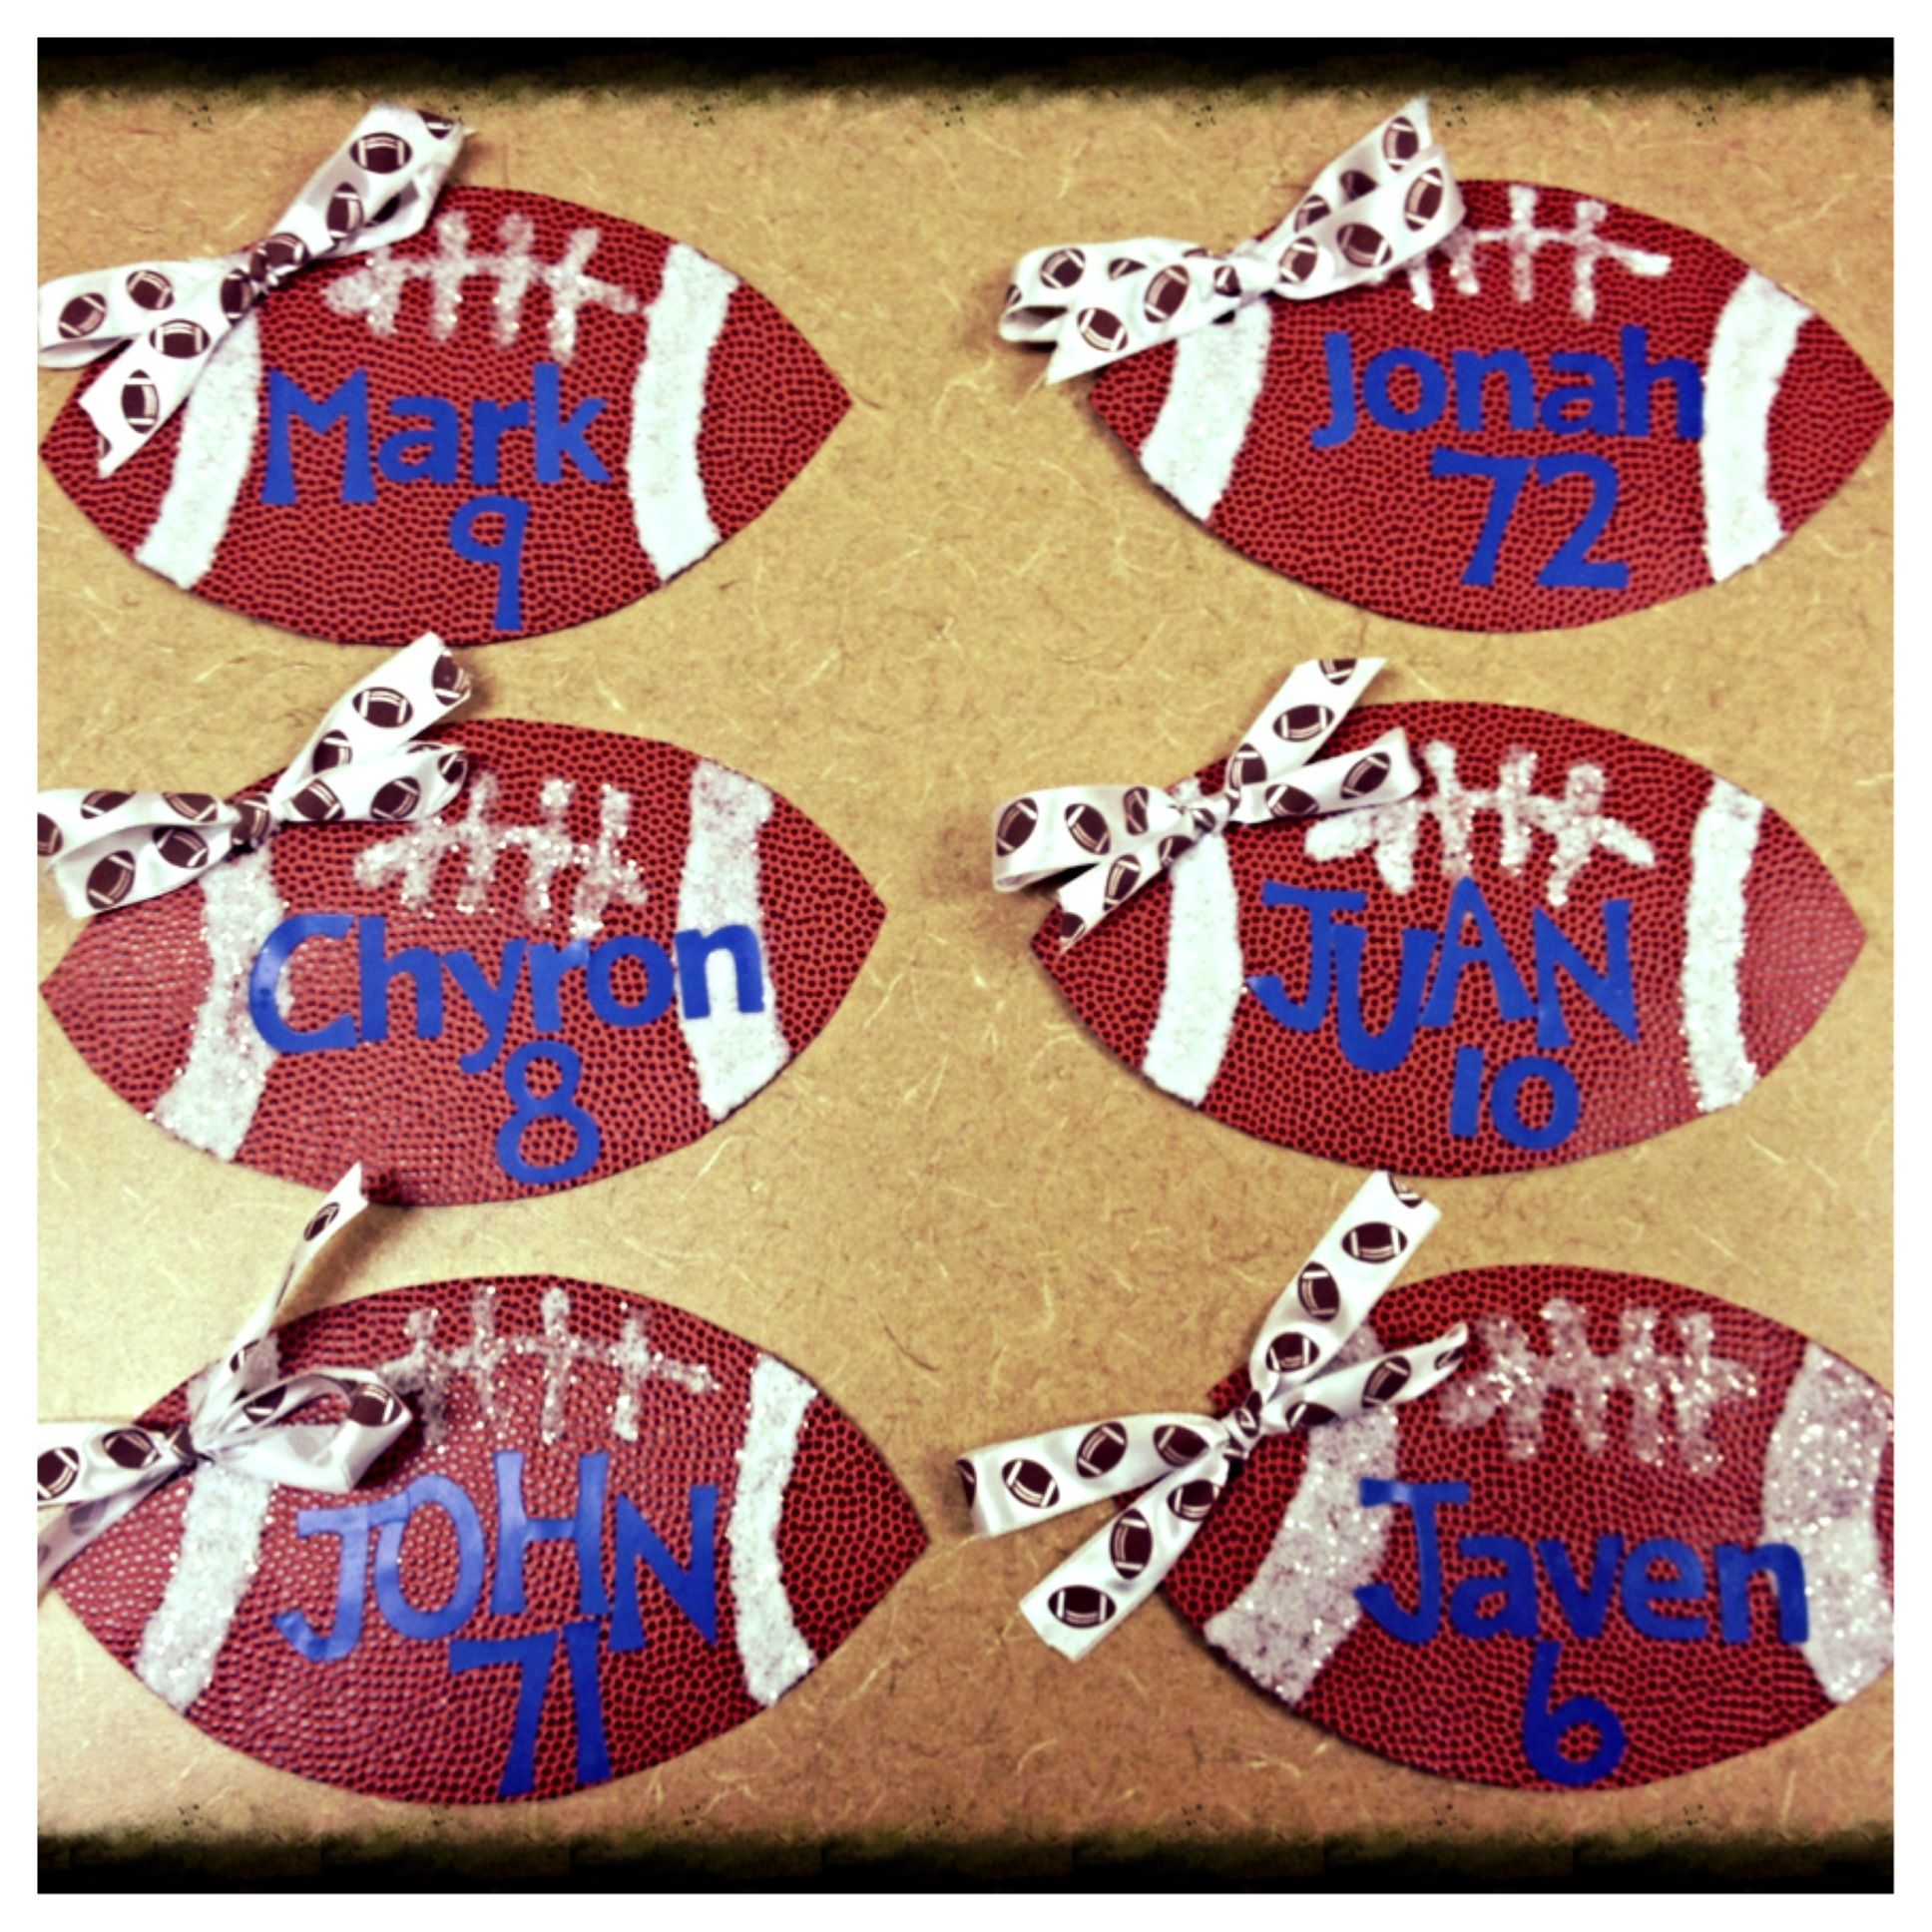 Locker Decoration Ideas For Birthdays: Football Players From Cheerleaders